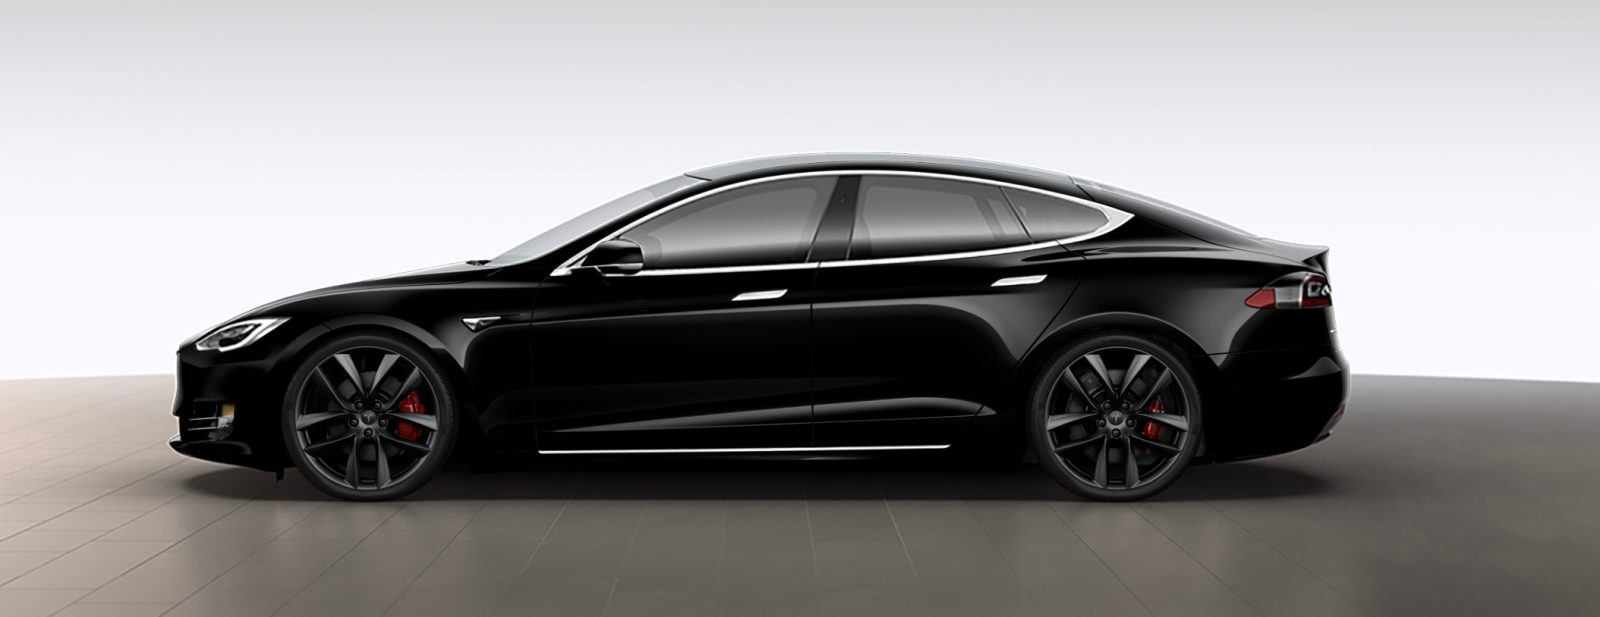 Tesla brings back ventilated seats and makes new black ...